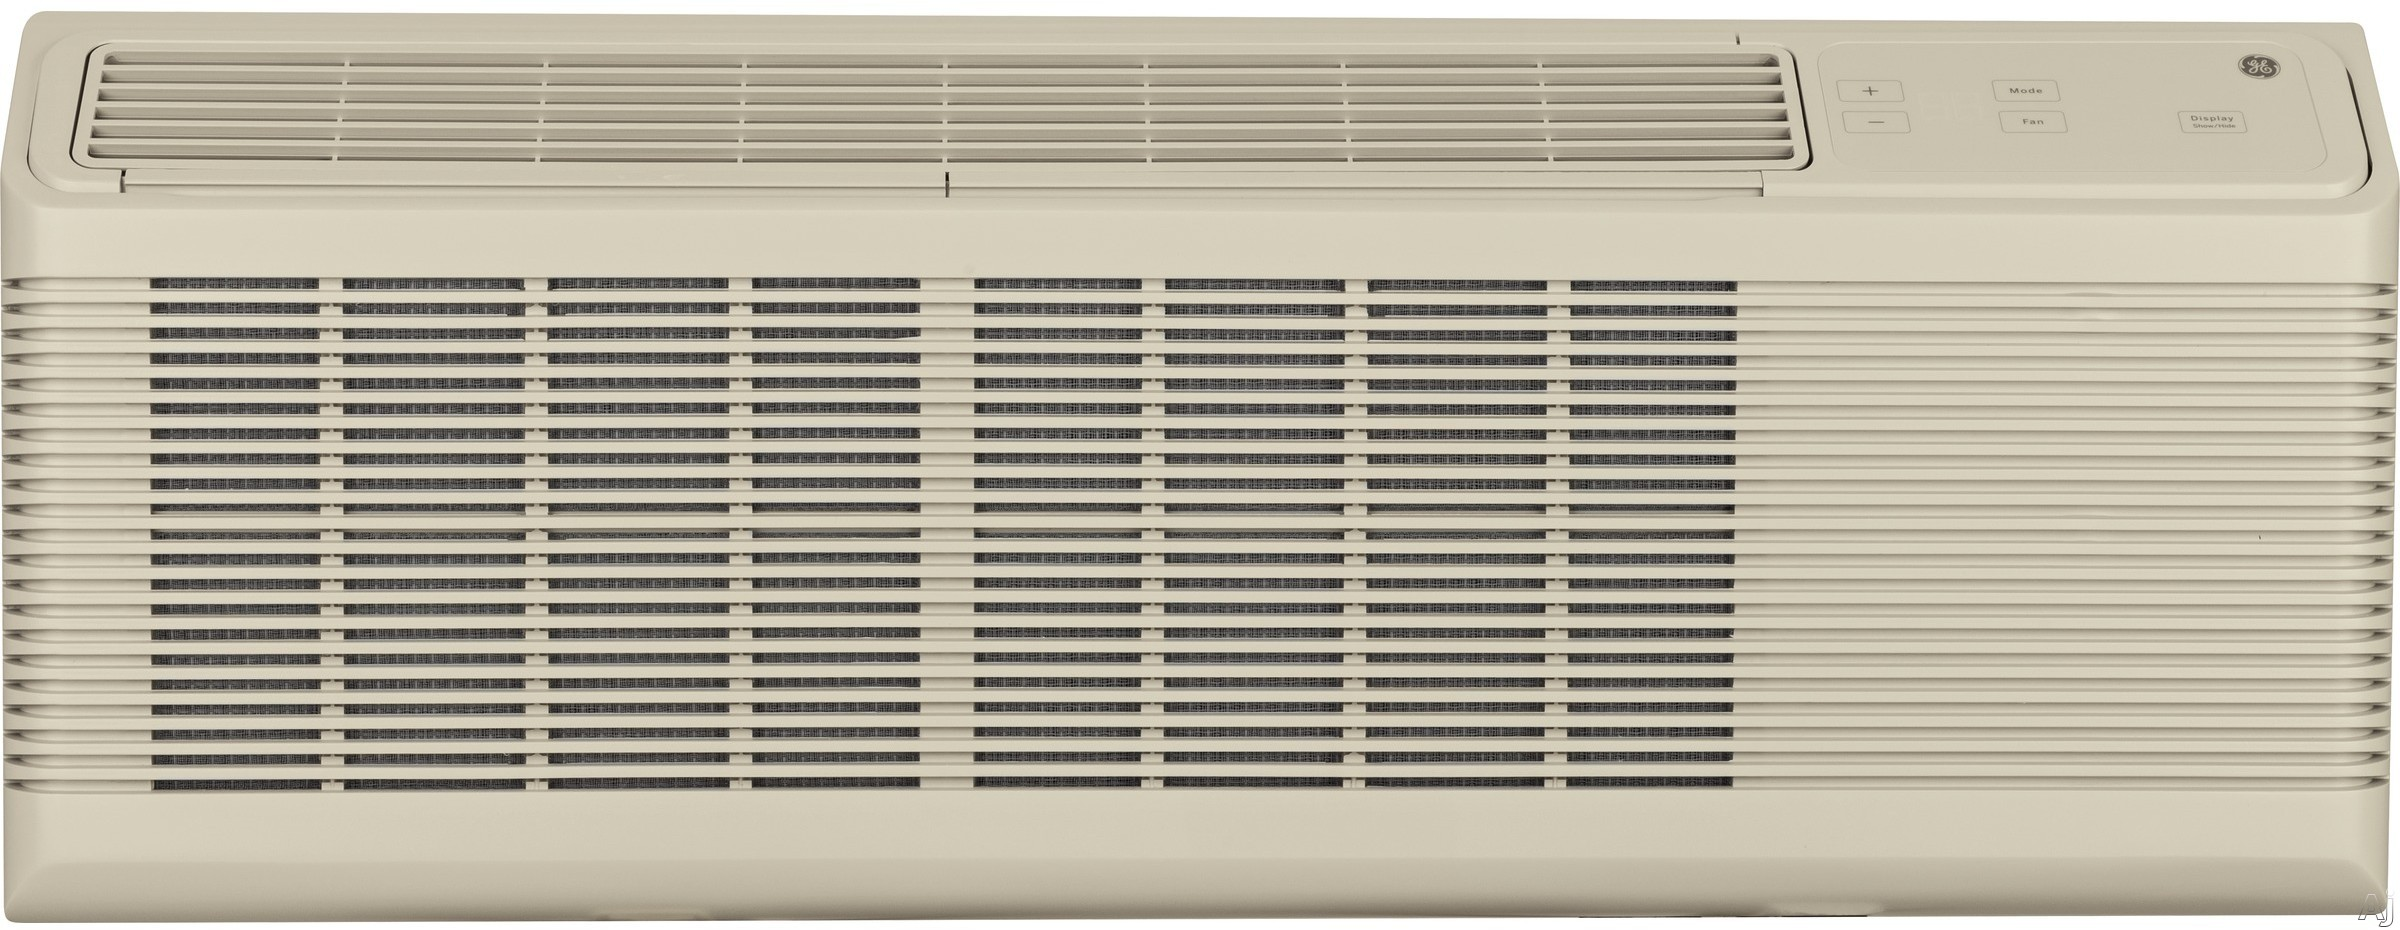 GE Zoneline AZ45E09DAC 9,400 BTU Packaged Terminal Air Conditioner with Electric Heat, Corrosion Protection, AZ45E09DAC